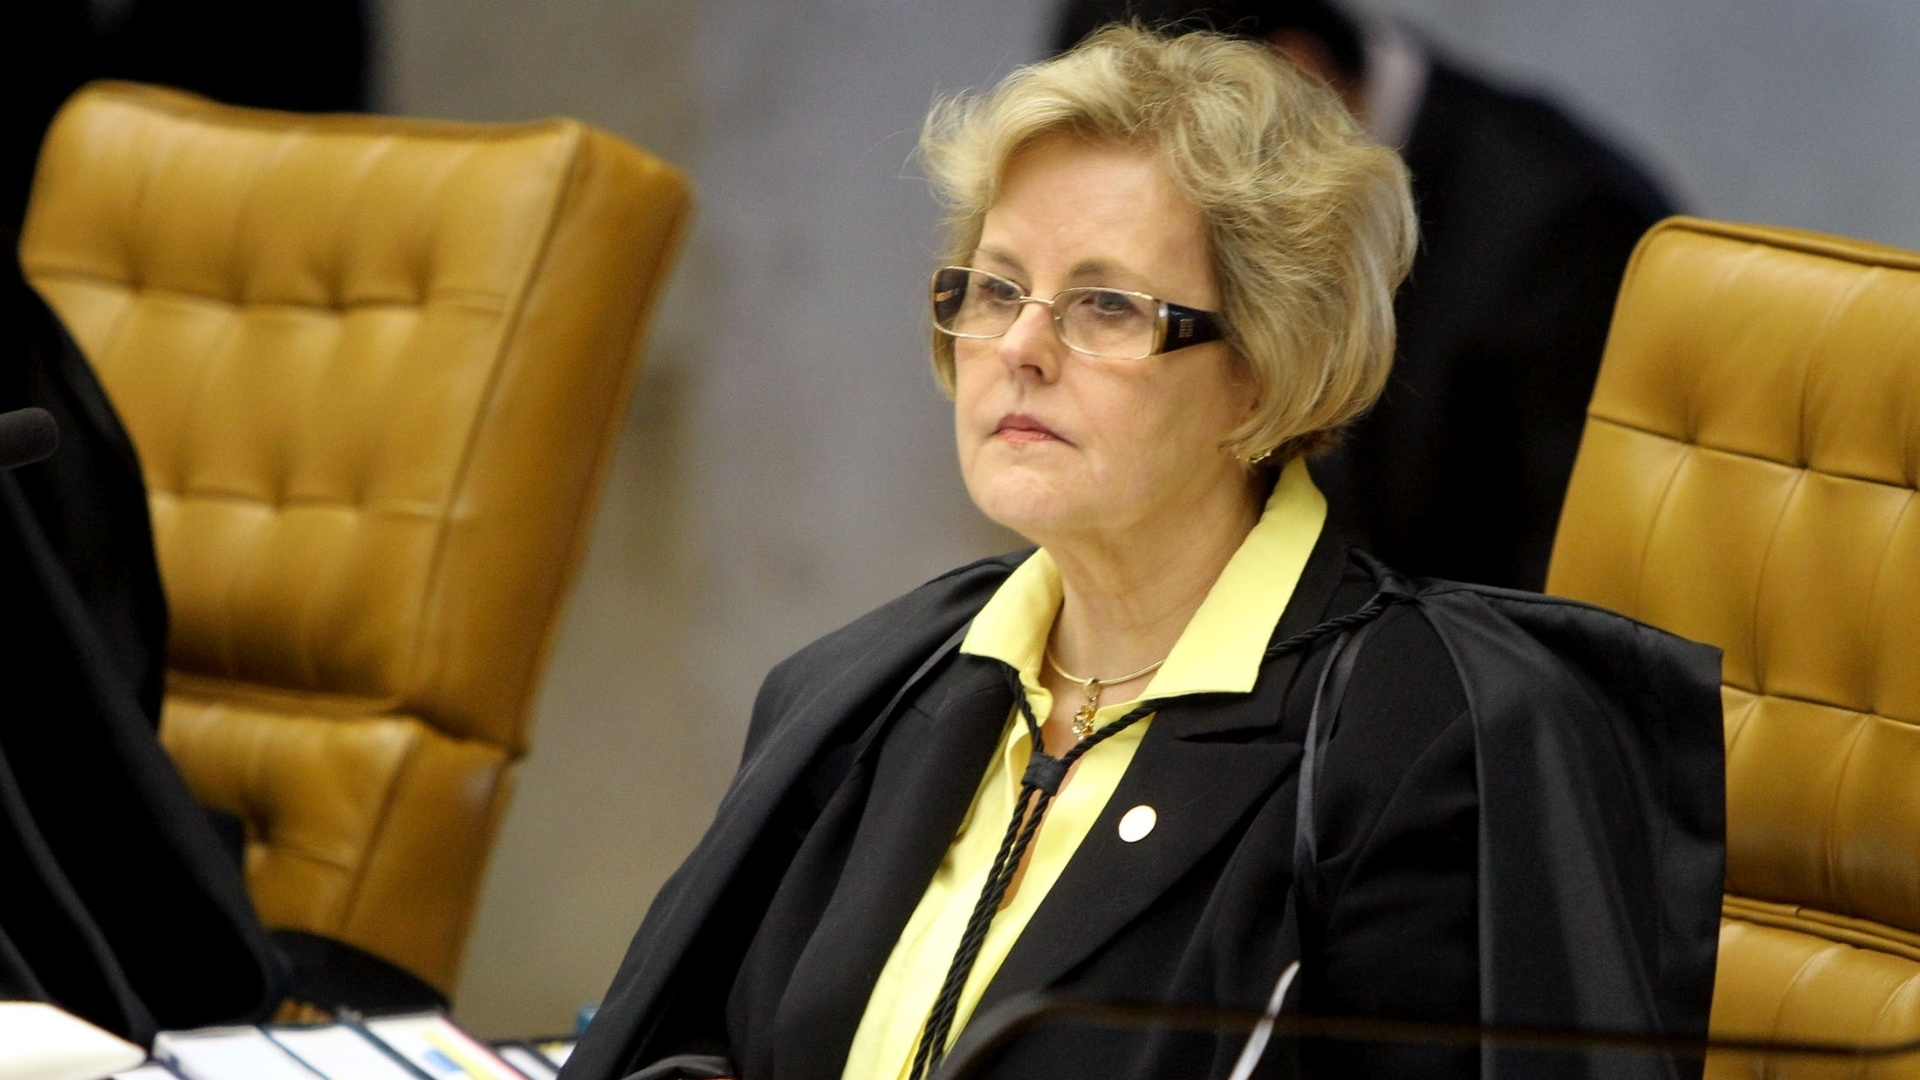 28.nov.2012 - A ministra do STF (Supremo Tribunal Federal) Rosa Weber acompanha a sessão do julgamento do mensalão que define as três últimas penas do caso: as do deputado federal João Paulo Cunha (PT-SP),  do ex-deputado federal Roberto Jefferson (PTB-RJ) e do ex-tesoureiro informal do PTB Emerson Palmieri